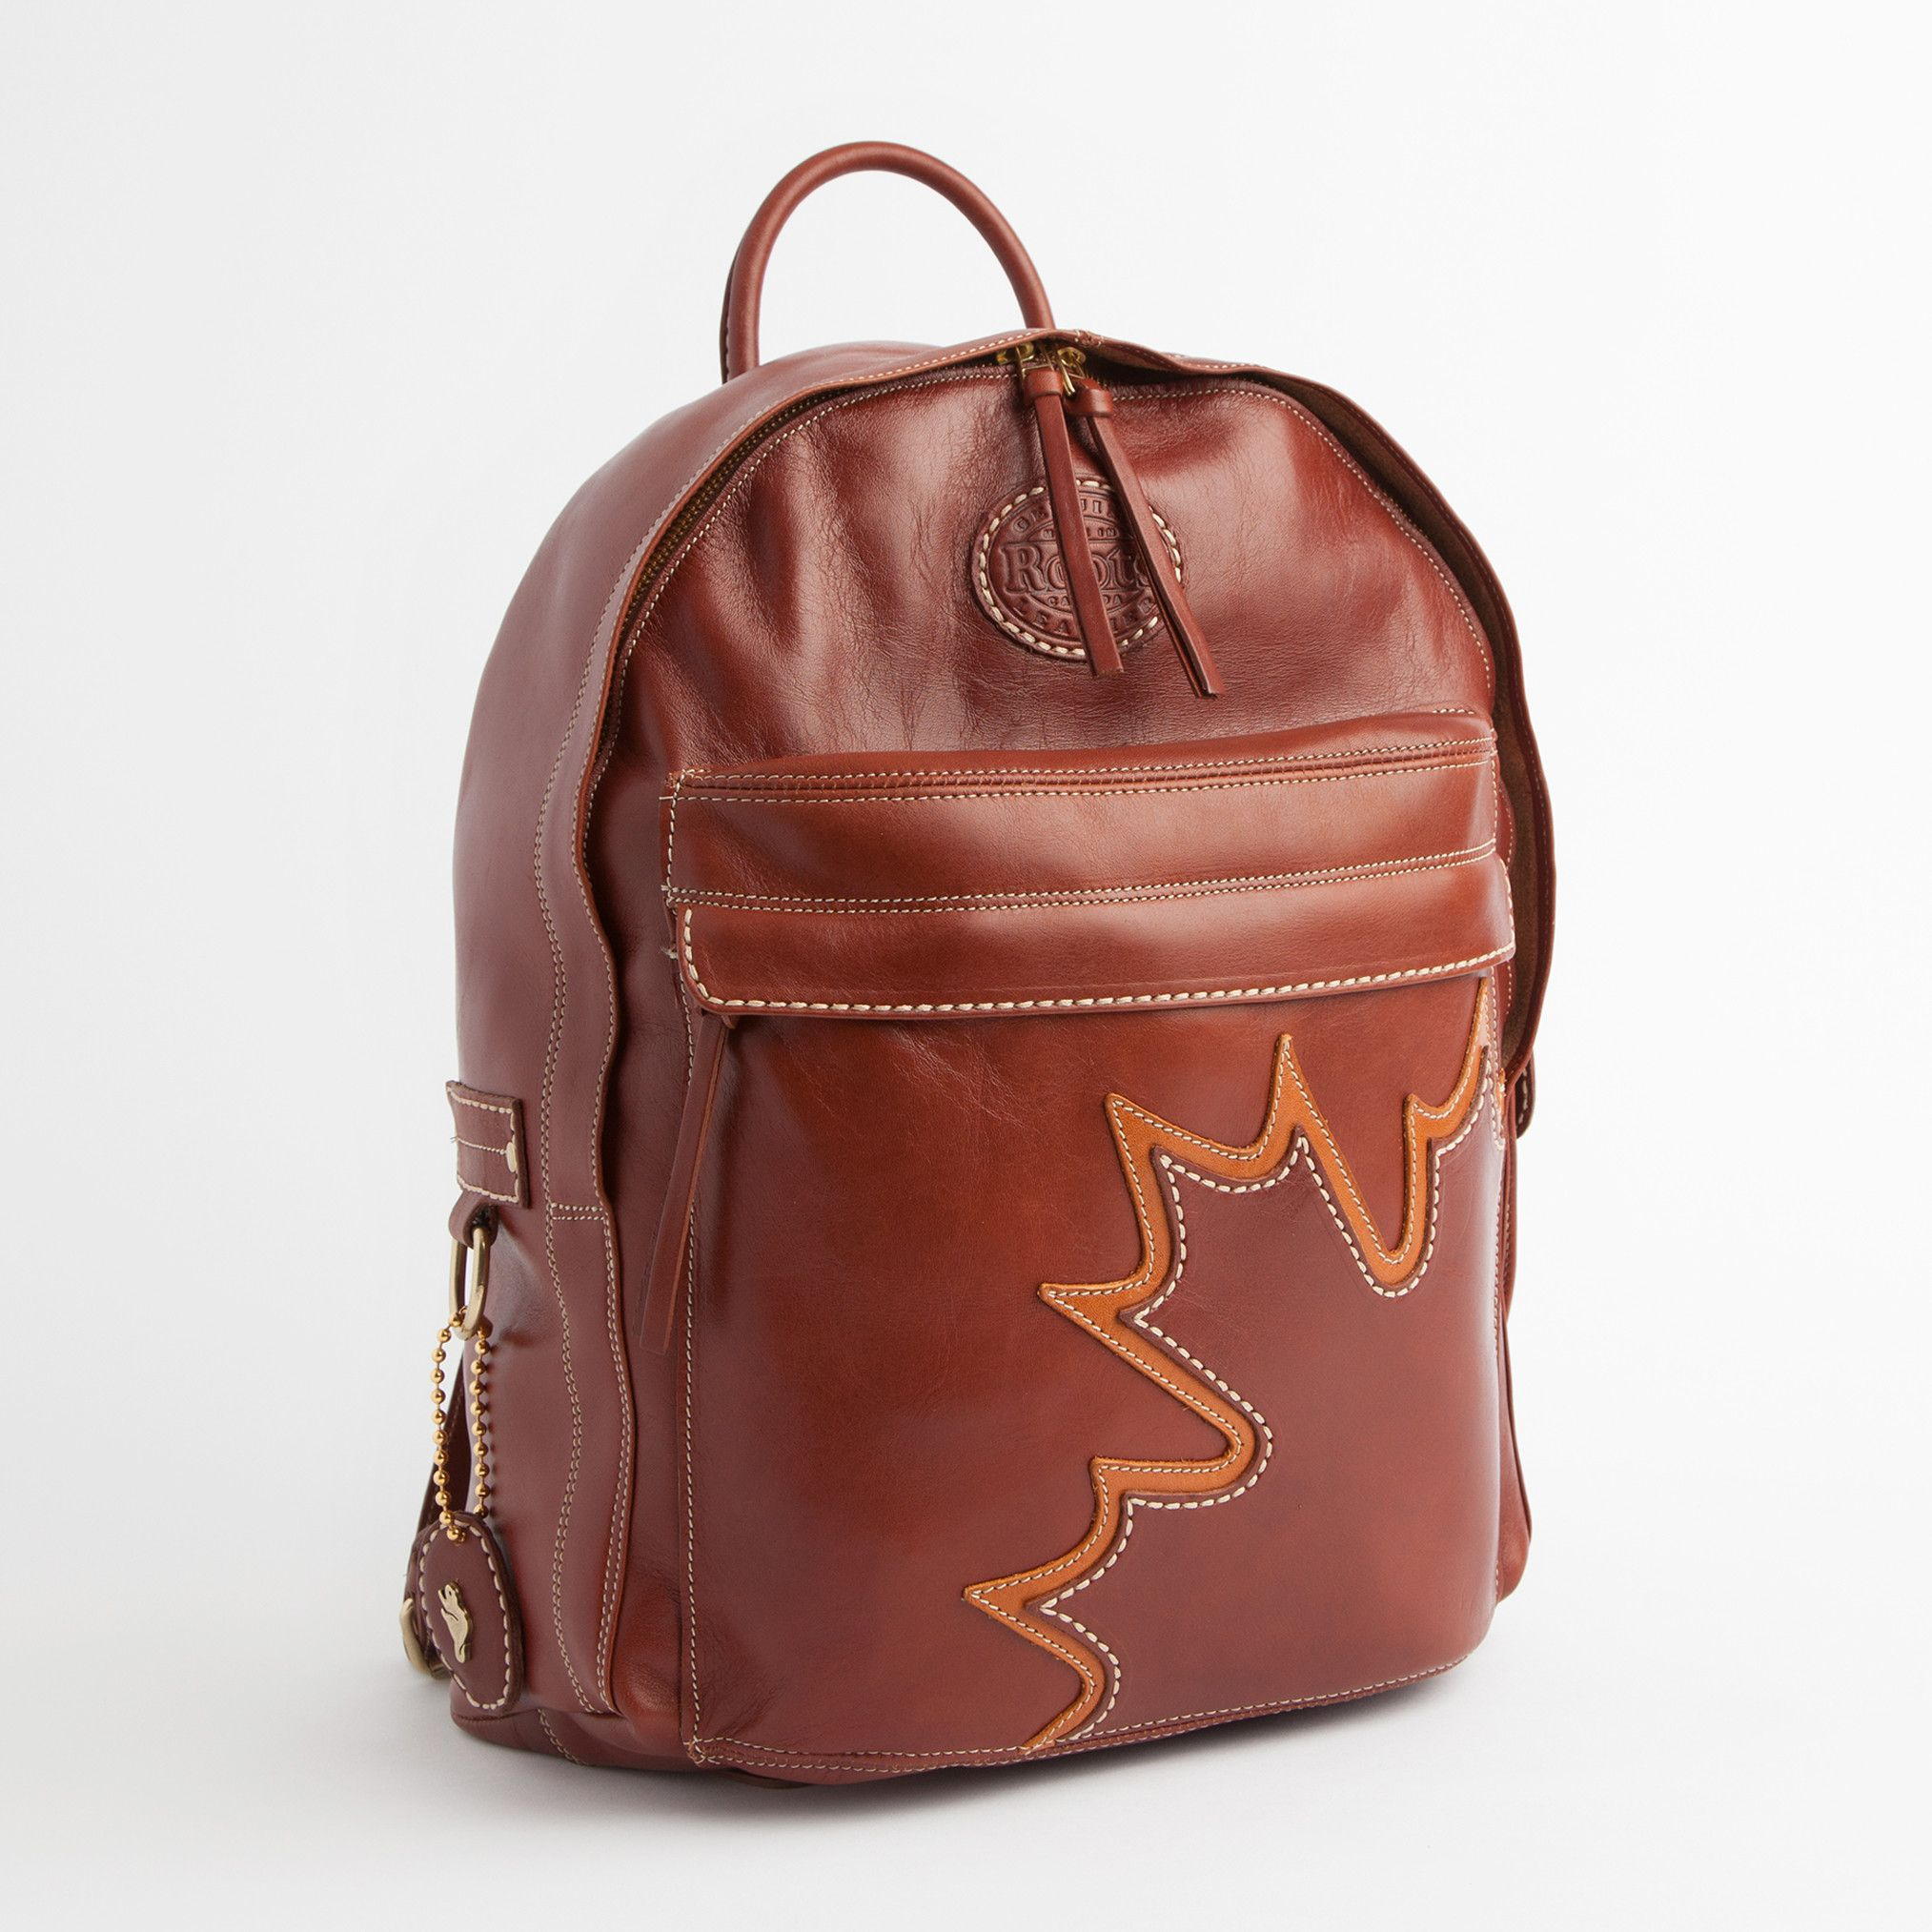 Canadian Student Pack Horween Leather Bags Roots